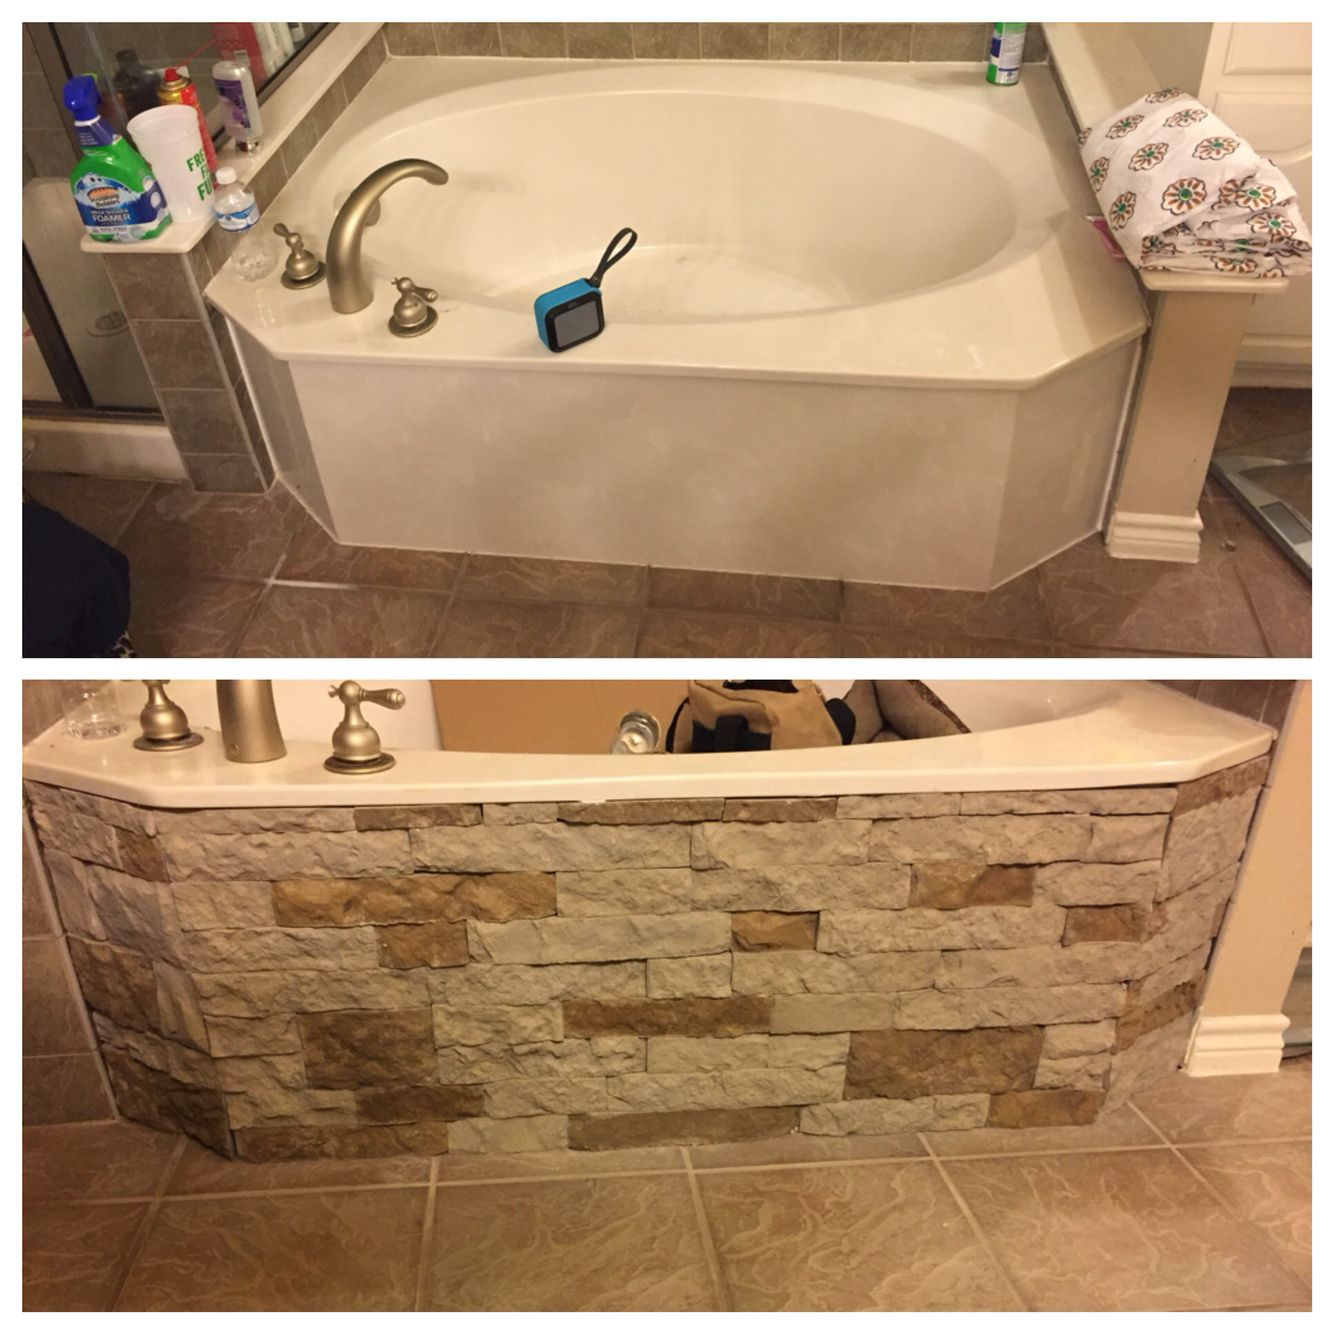 My bathtub remodel with Airstone! | Household changes/remodels ...